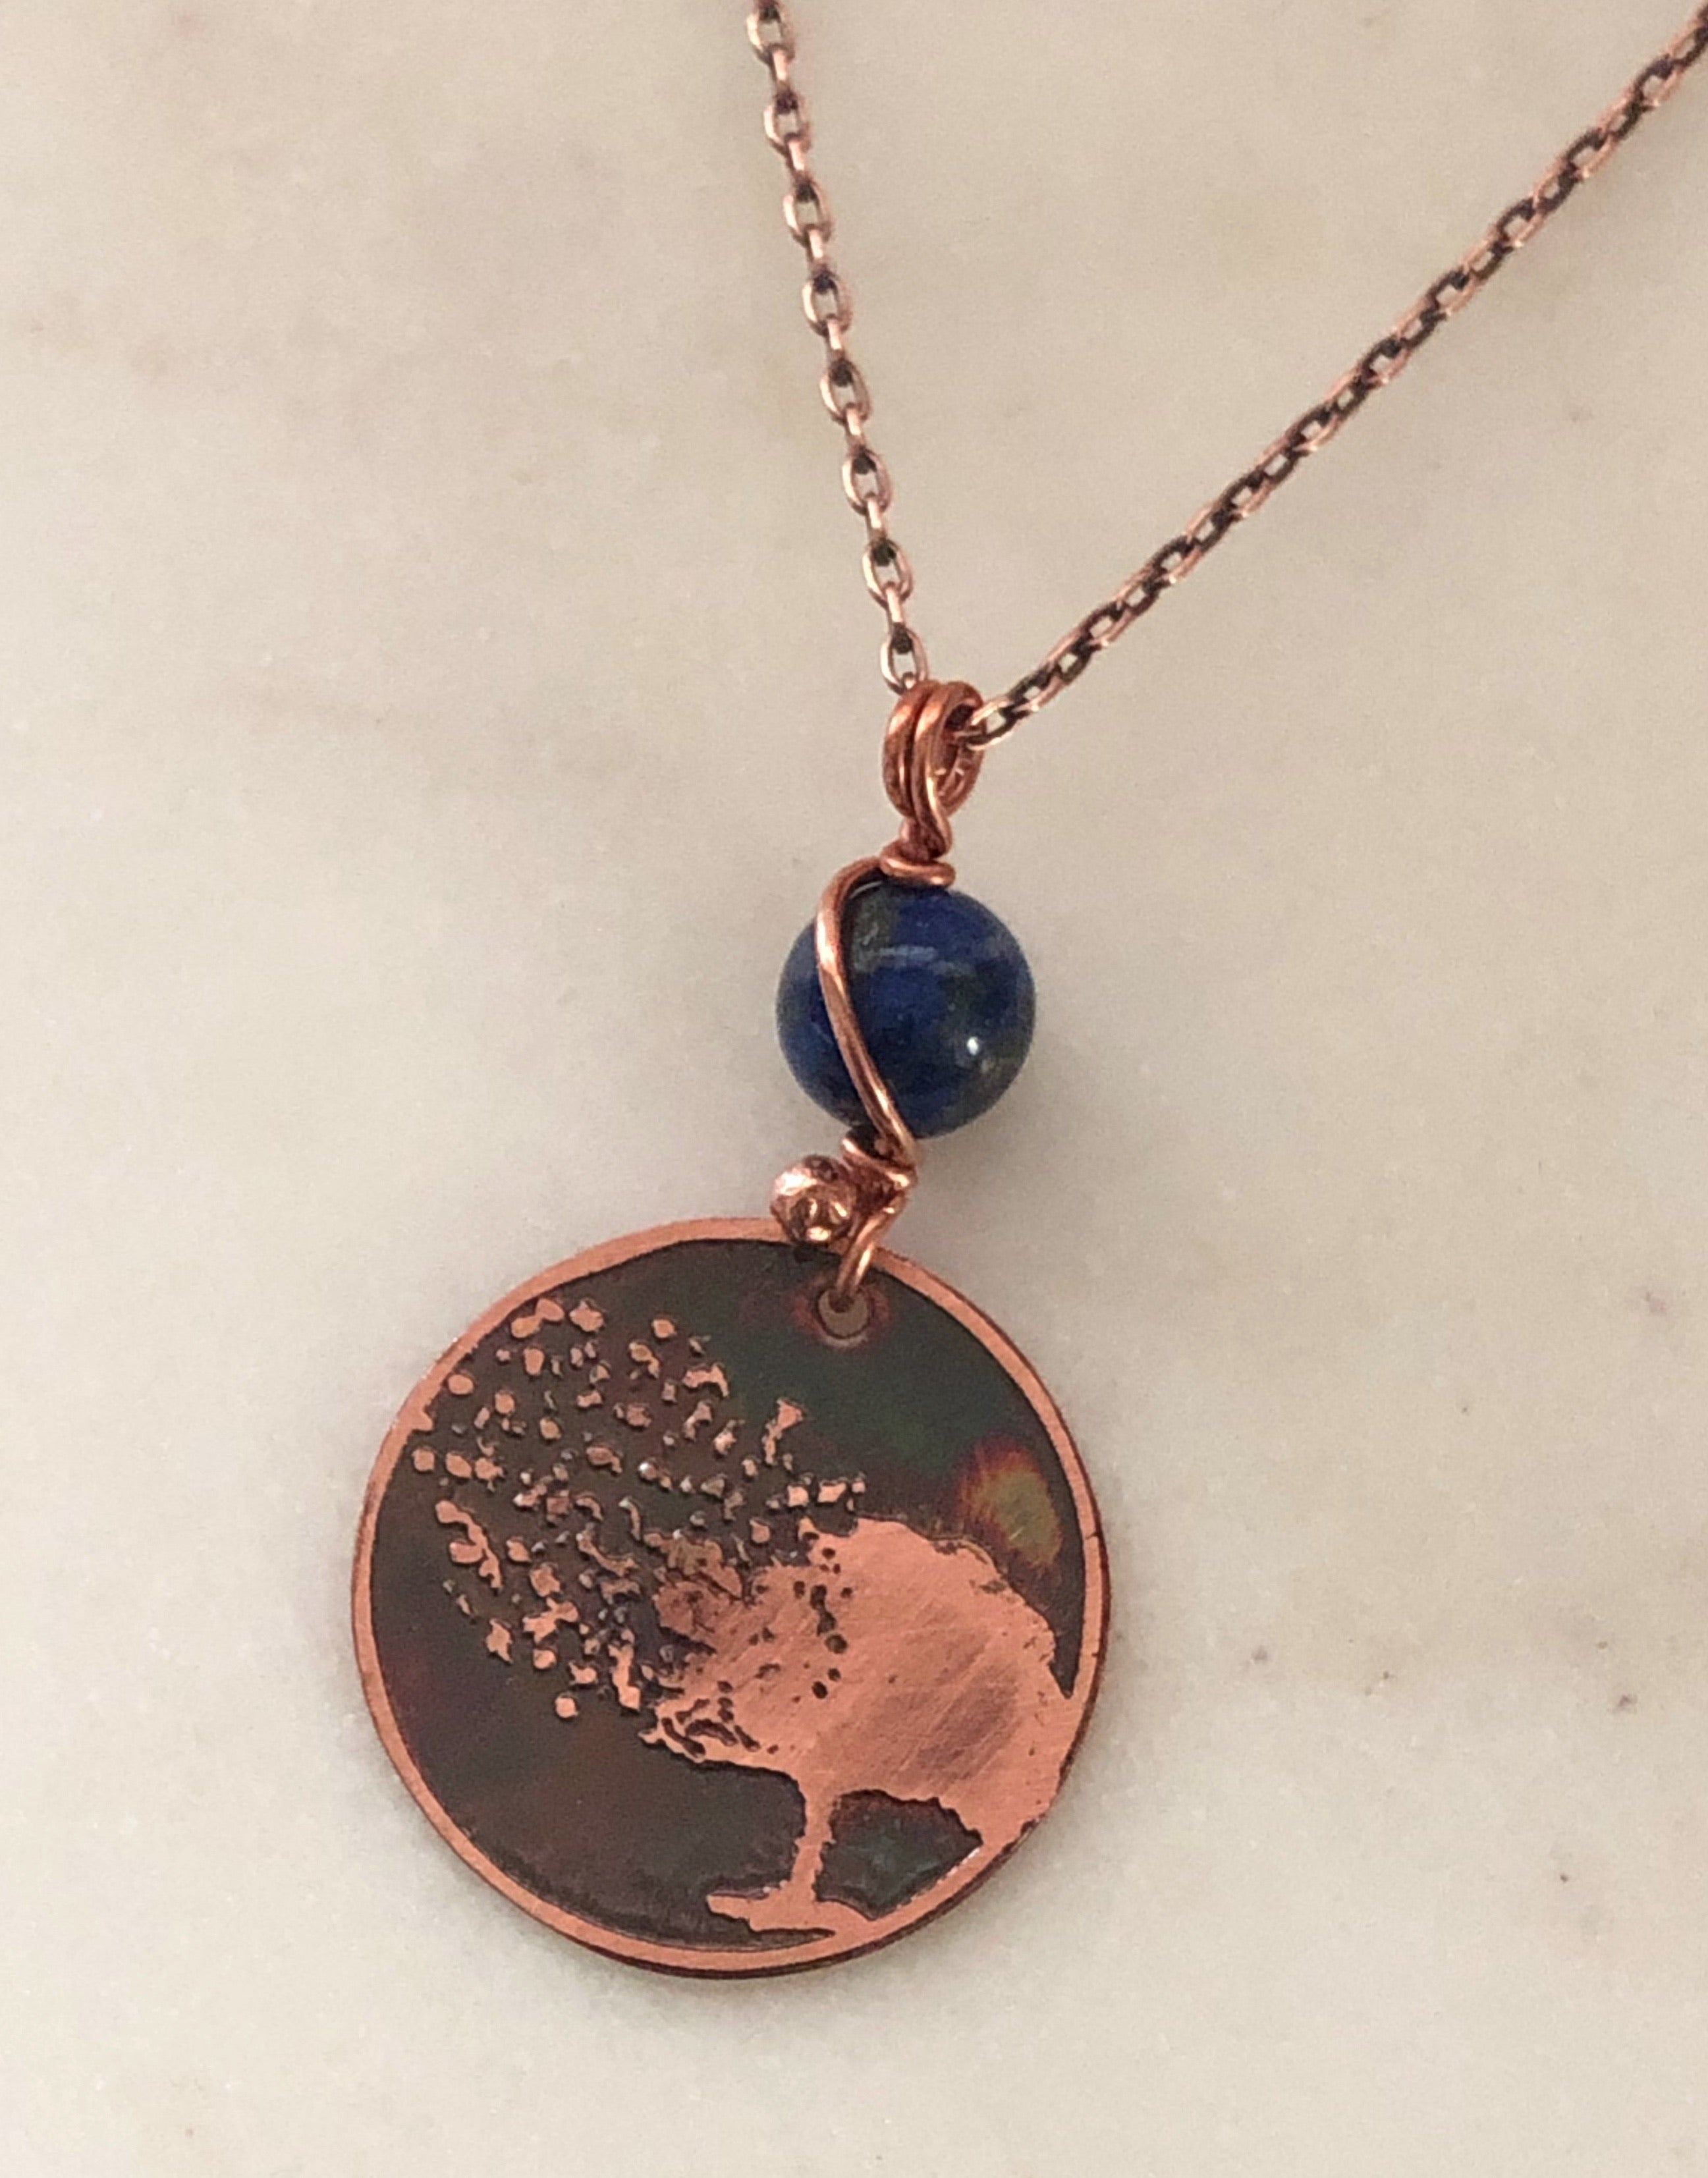 Acid etched copper blowing tree necklace with lapis